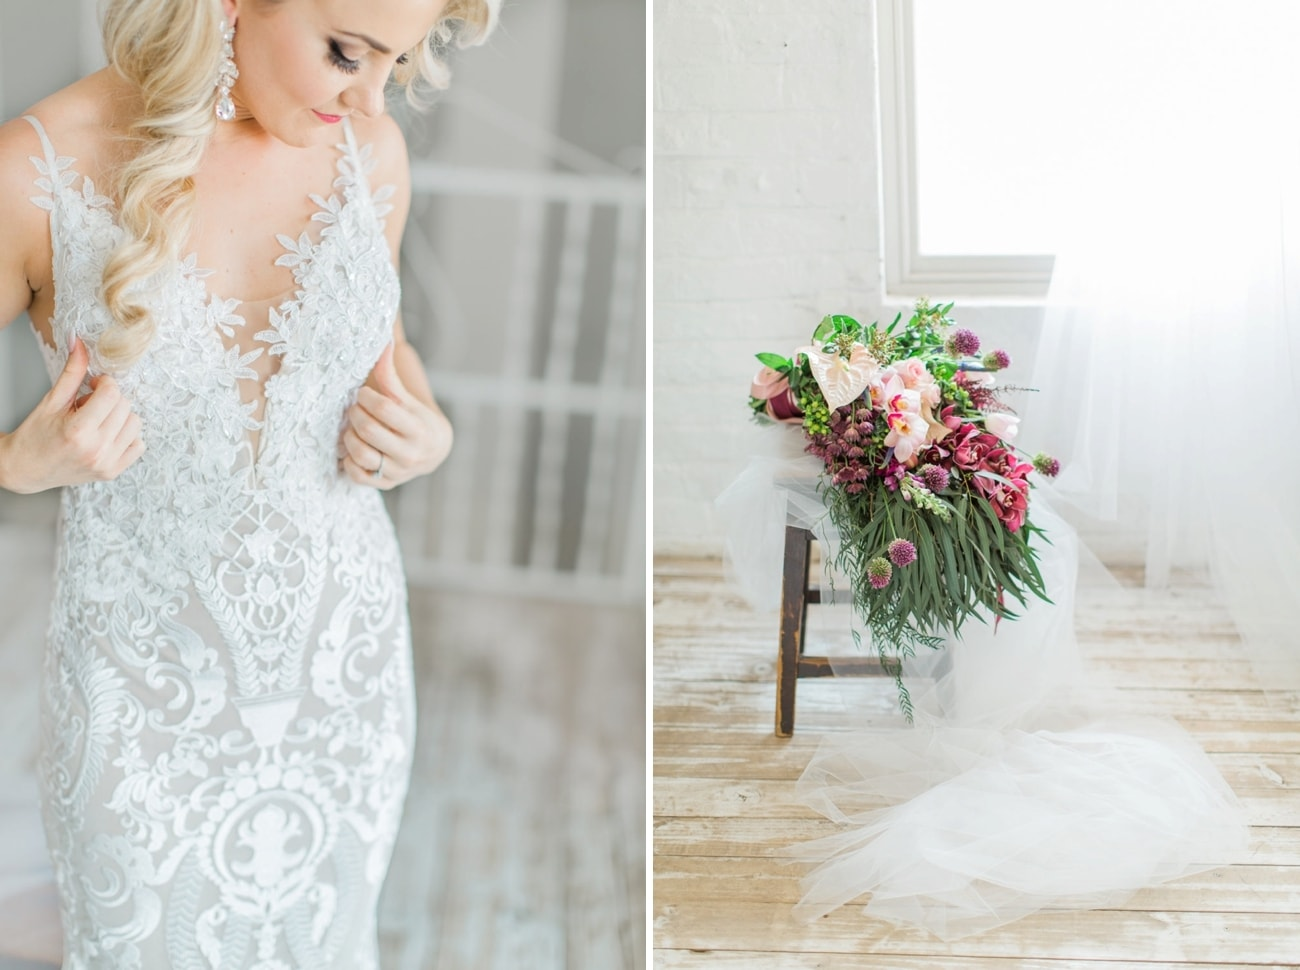 Nude Lace Wedding Dress | Image: Grace Studios